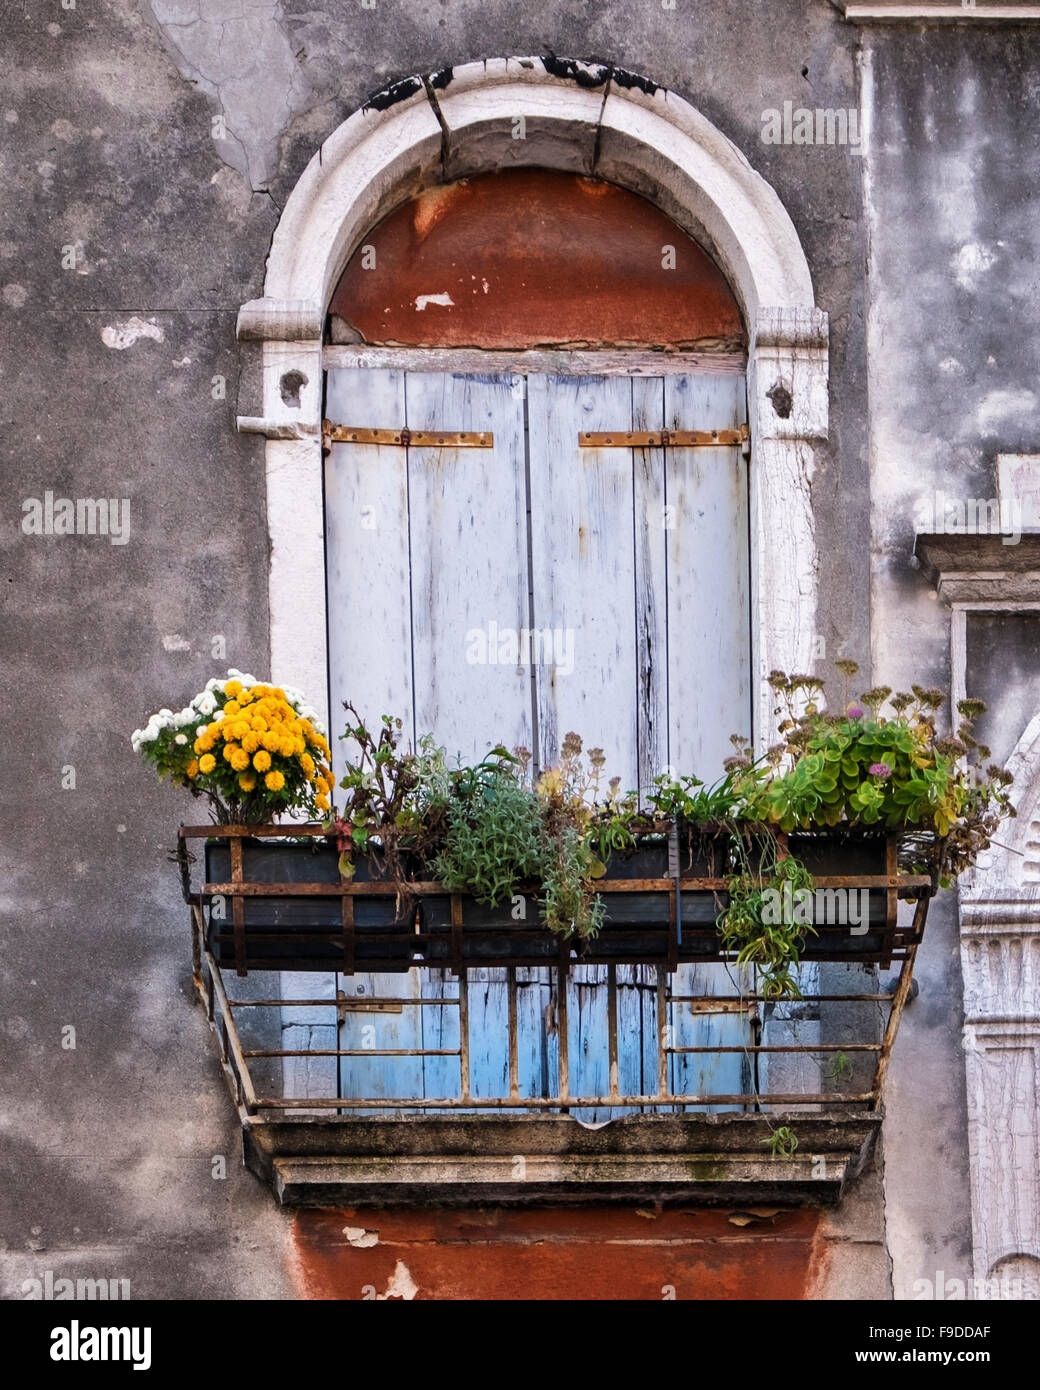 House exterior stockfotos house exterior bilder alamy for Indische tur